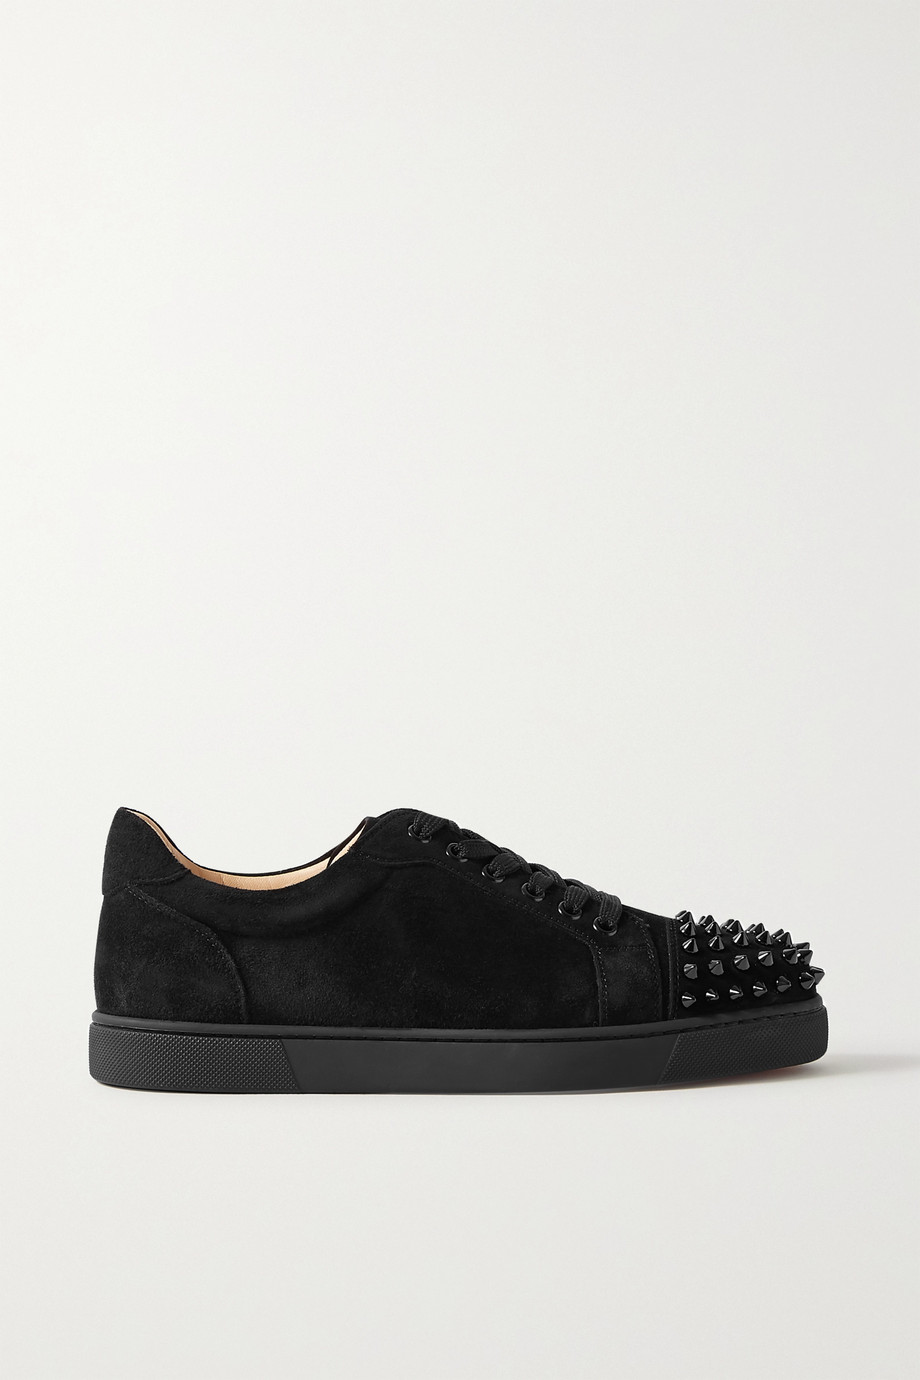 CHRISTIAN LOUBOUTIN Vieira spiked suede sneakers